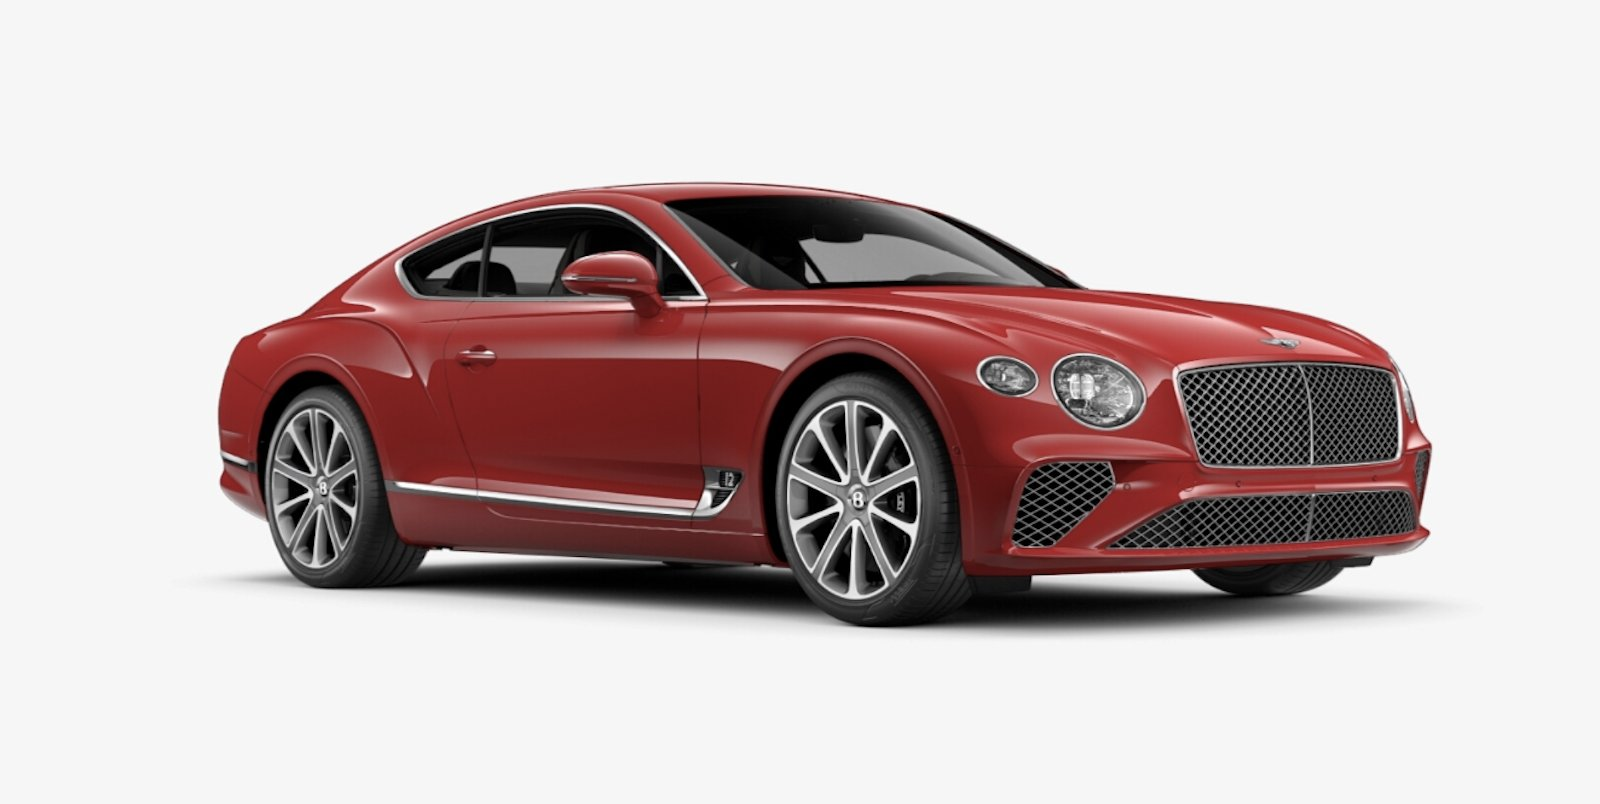 Bentley Configurator Allows You To Build Your Own 2018